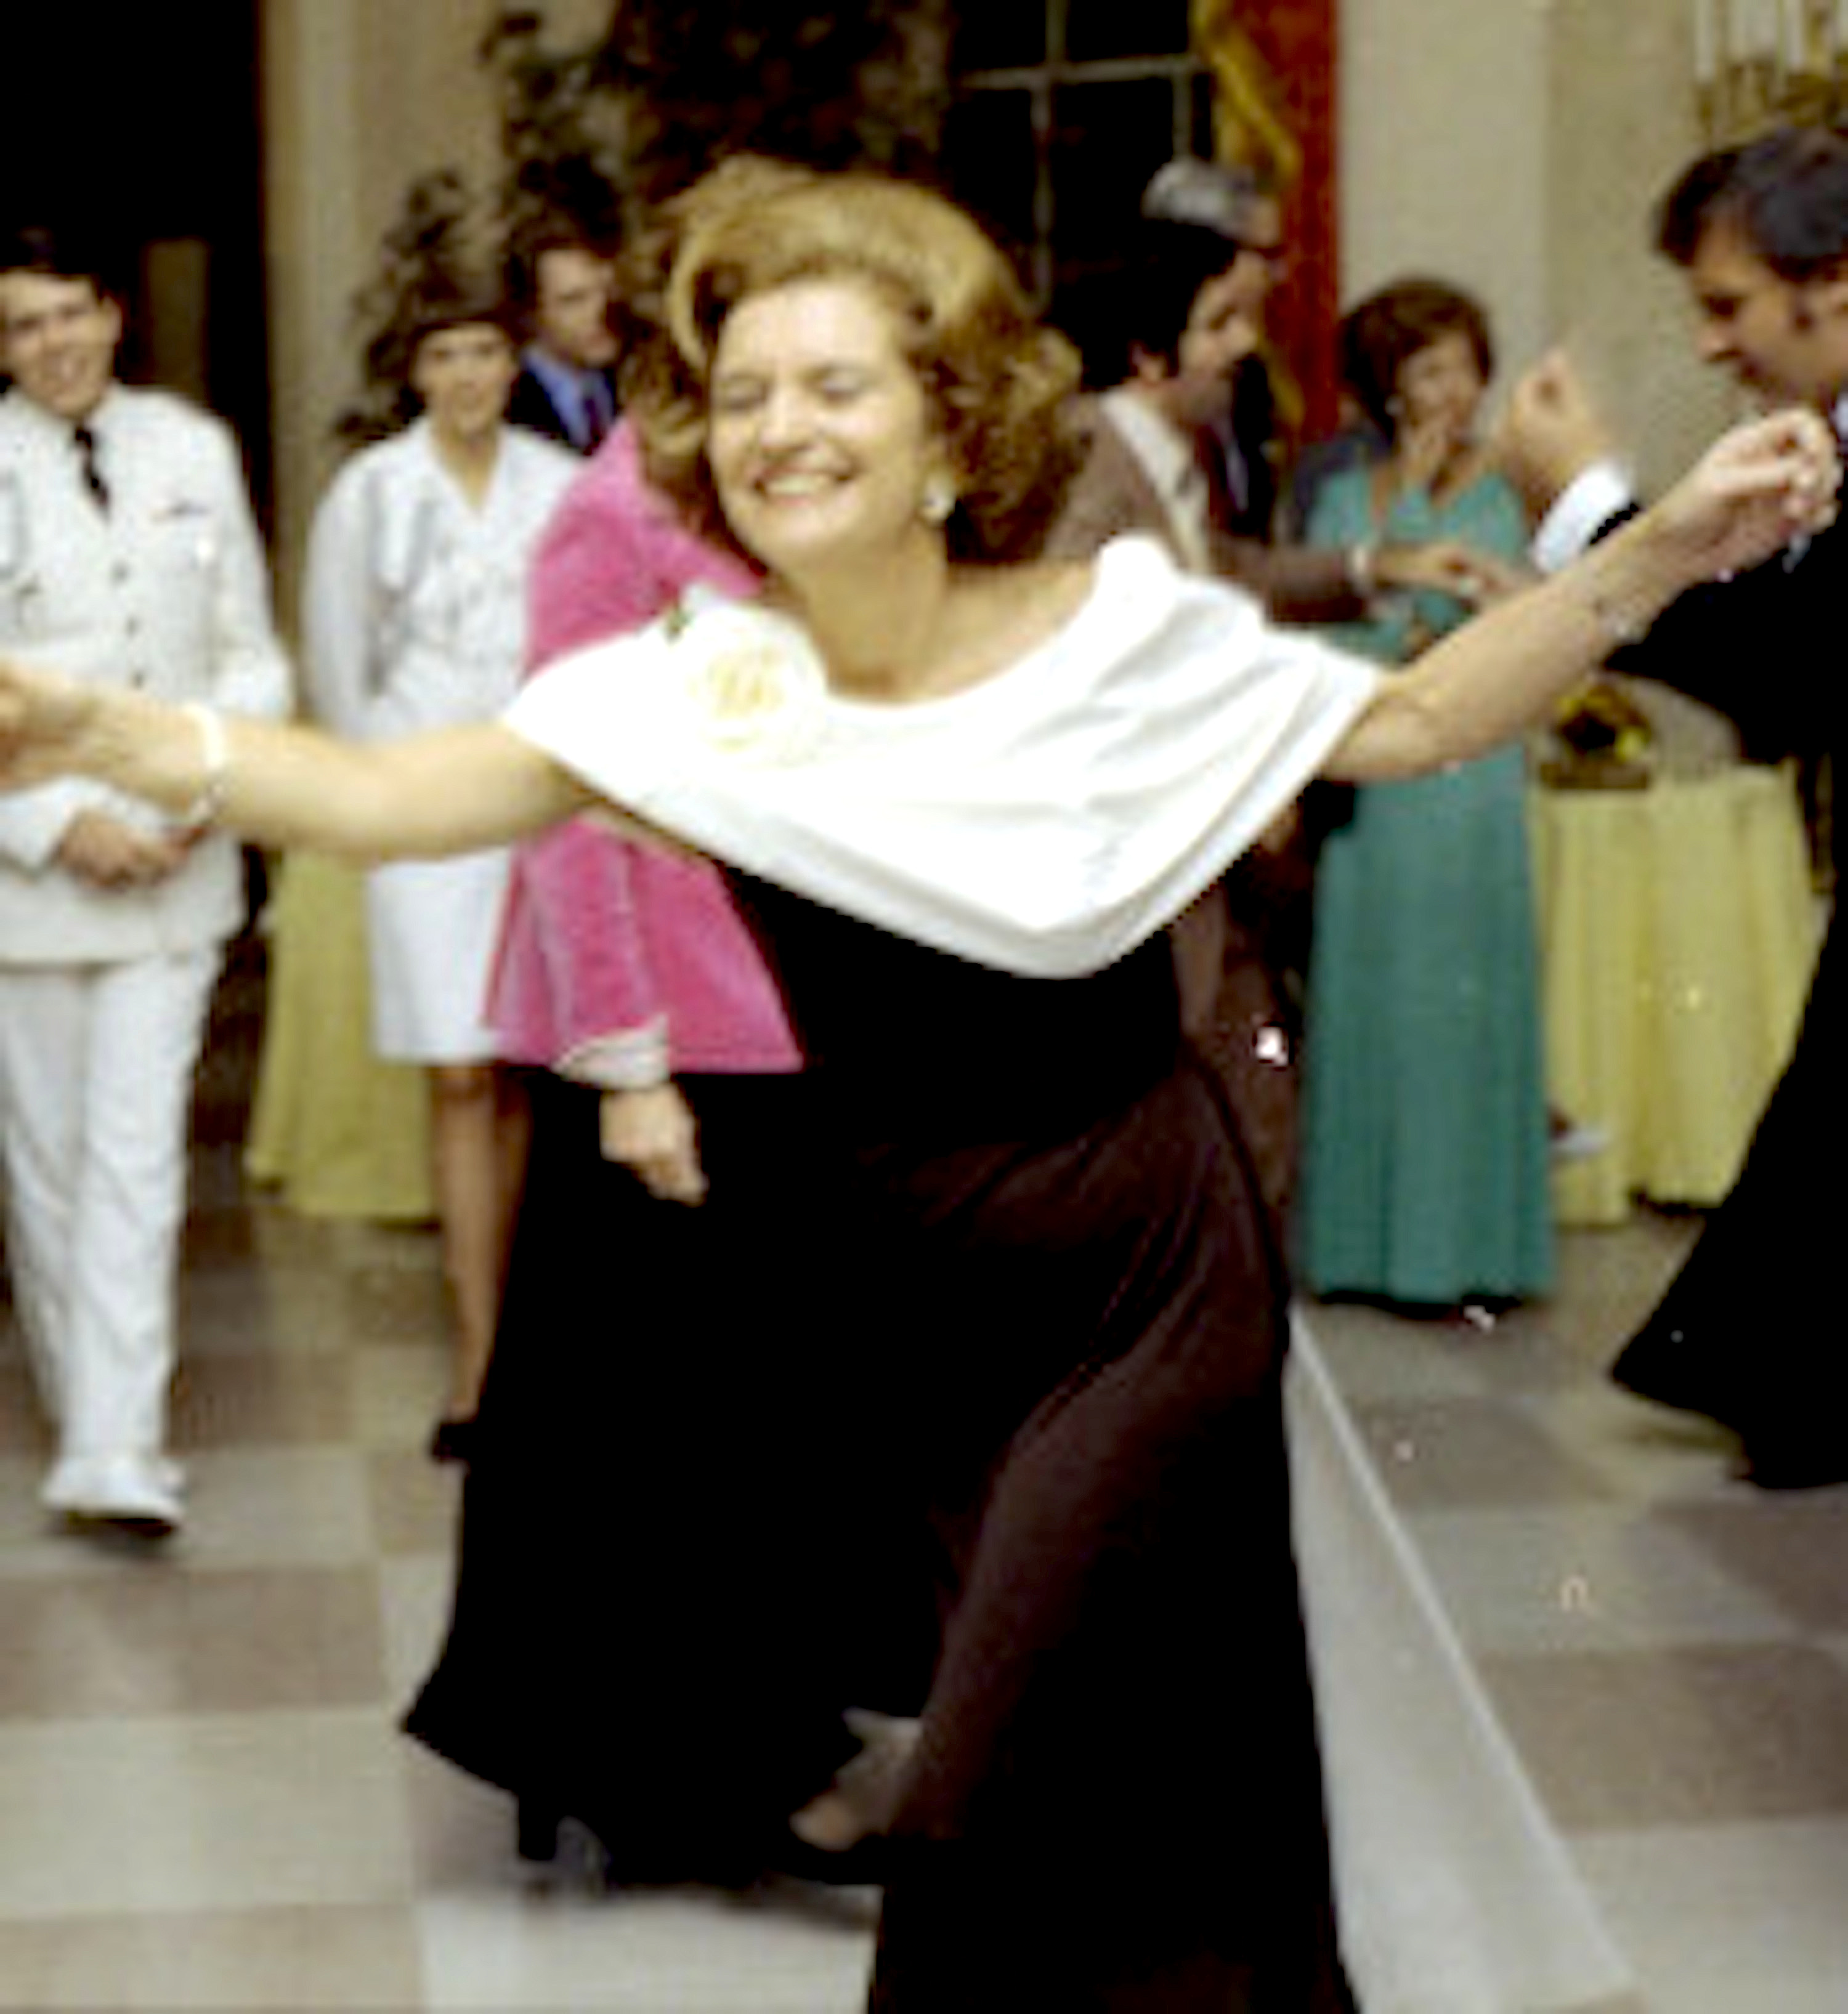 Betty Ford dancing at an October 1975 state dinner in a black gown with white caped collar. (GRFL)